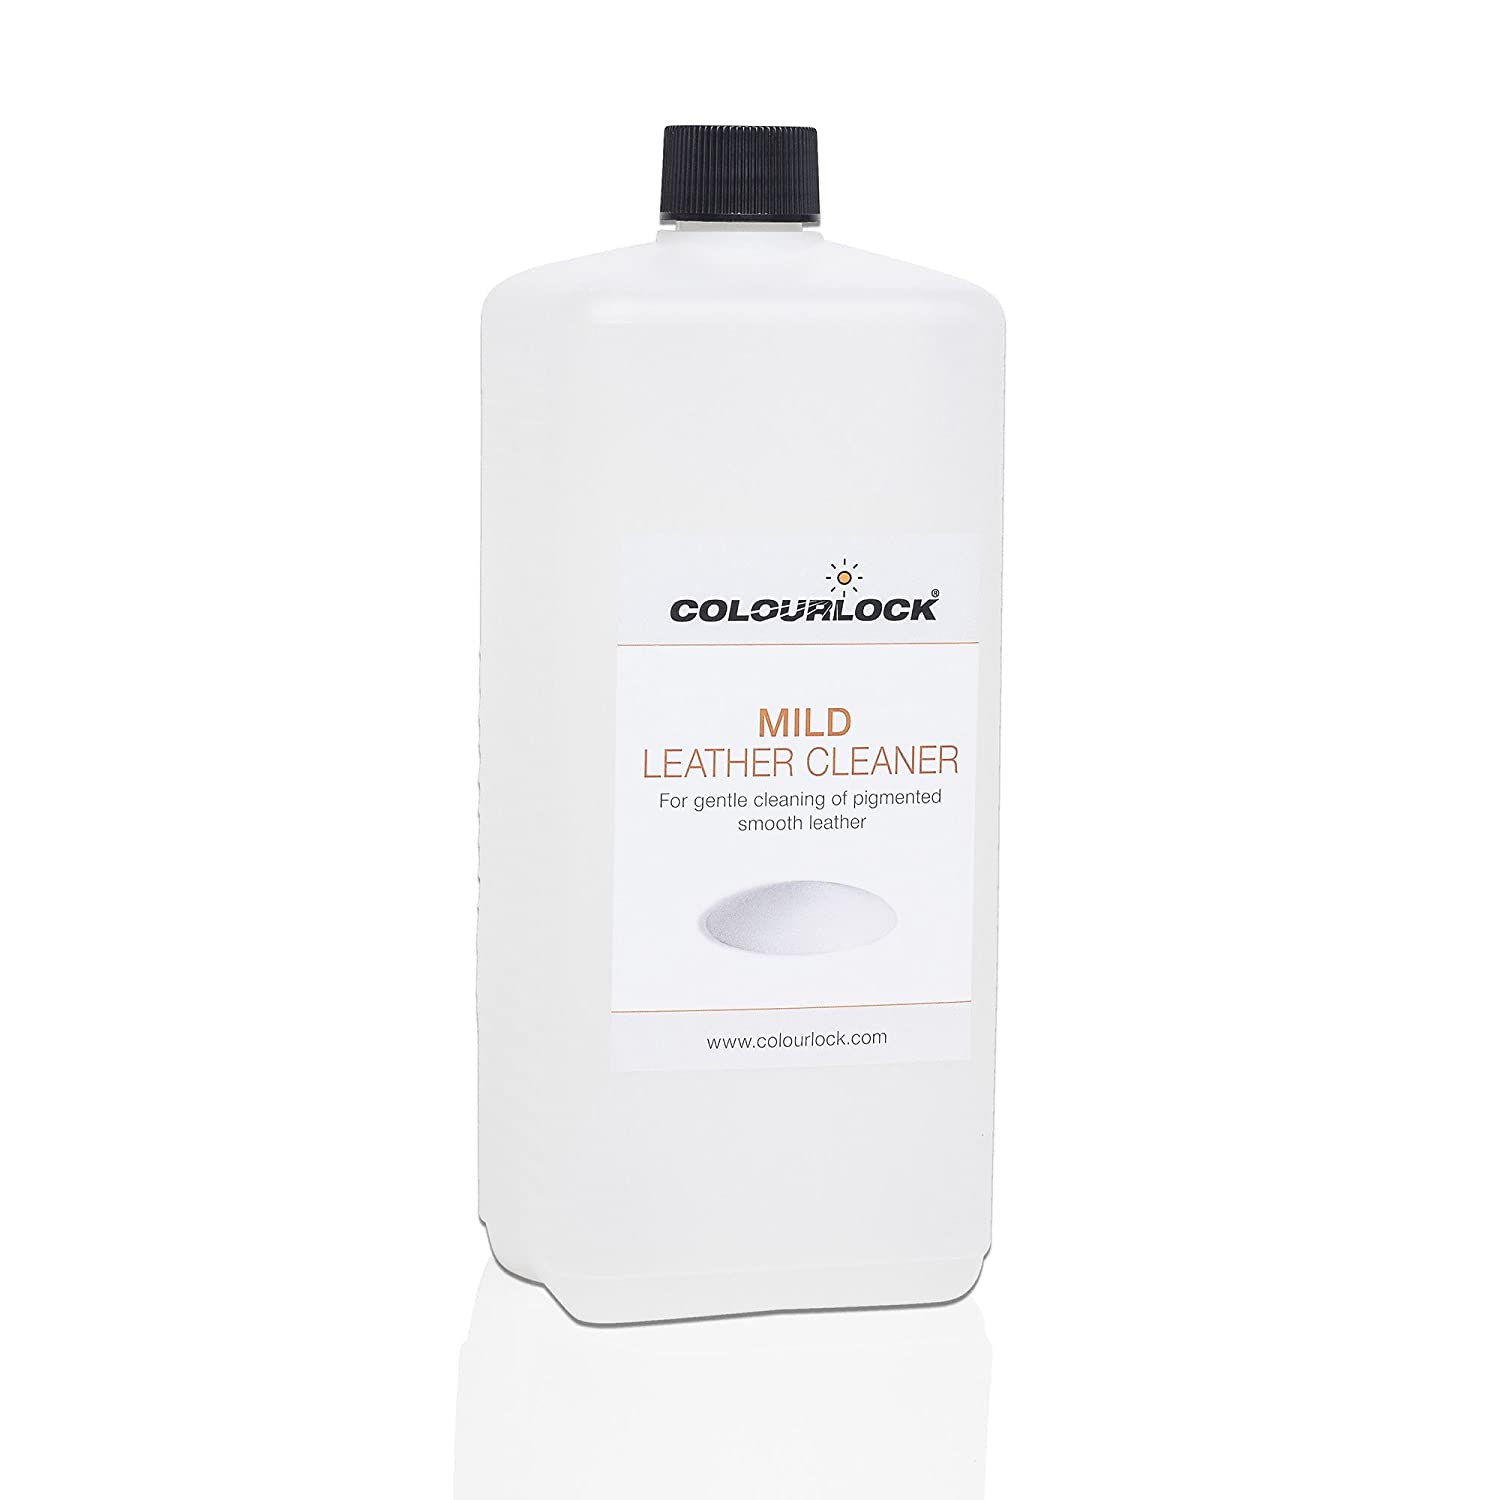 COLOURLOCK Mild Leather Cleaner for cleaning car seats, furniture suite, sofa, settee, upholstery, jackets and bags (1 Litre / 33.8fl oz) with Free Foam Dispenser Bottle Lederzentrum Gmbh H&PC-76639